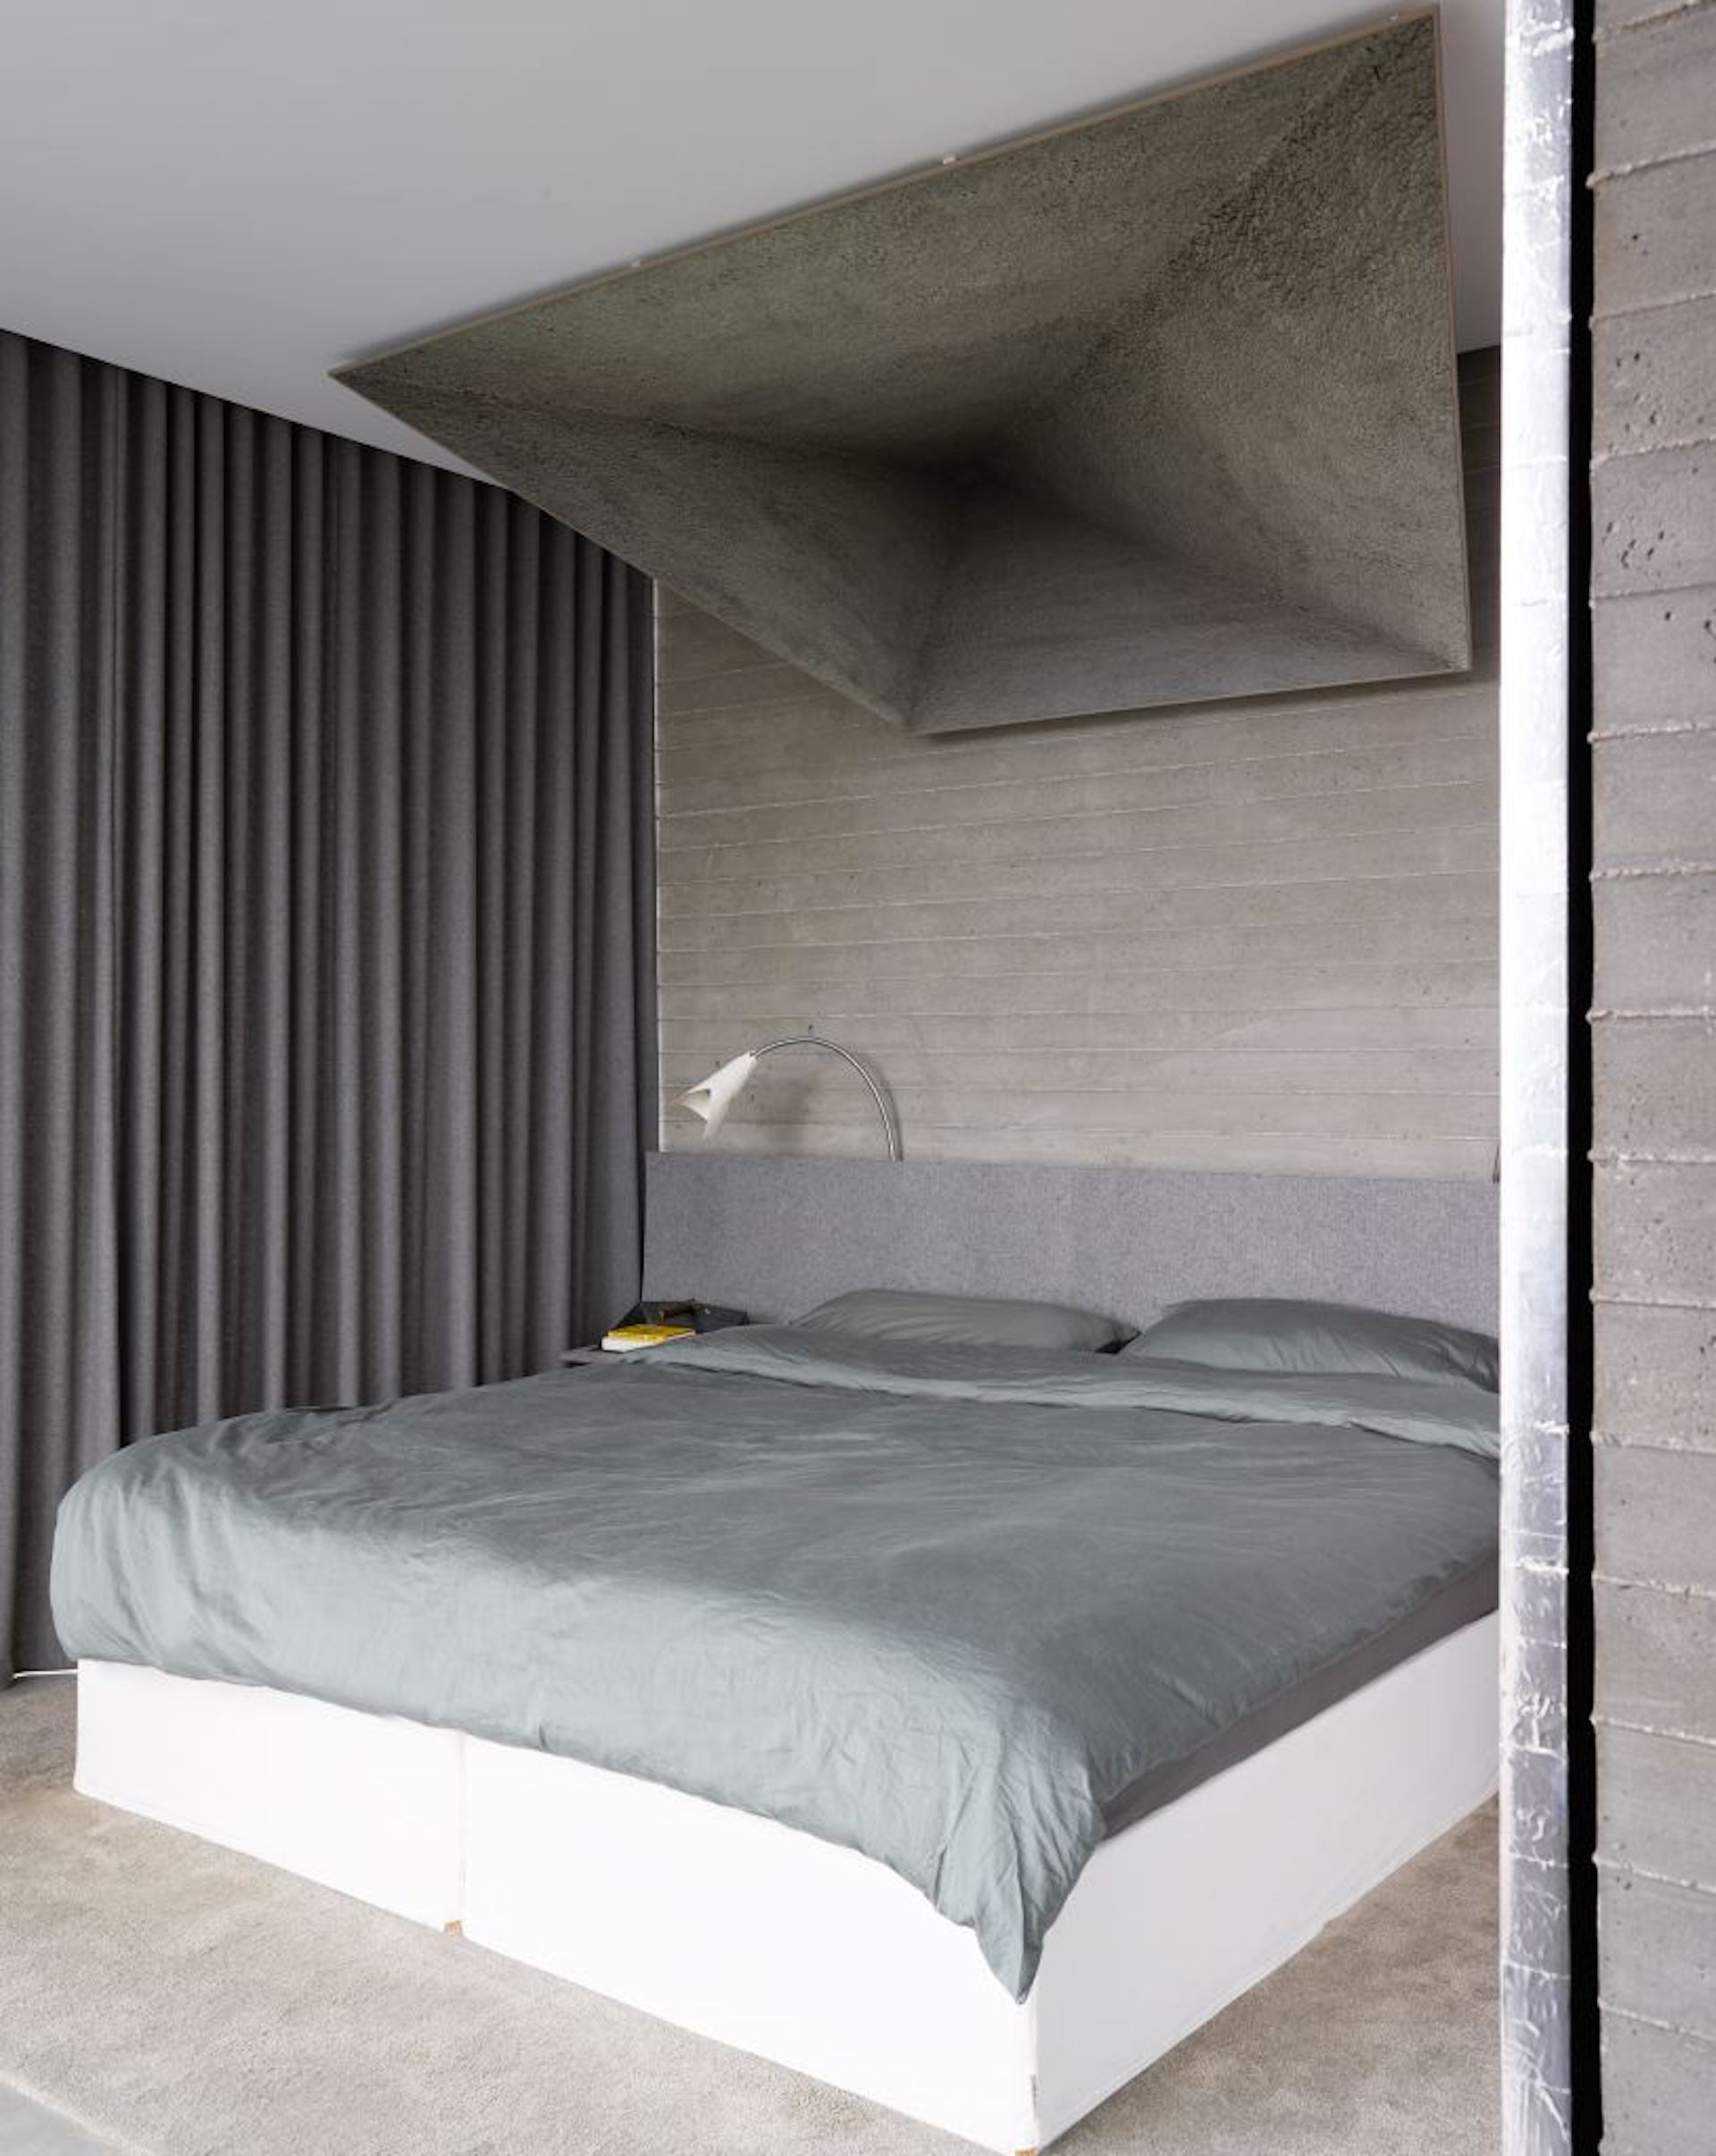 In the bedroom, a custom felt headboard with lamps by wHY. Photo © Richard Powers